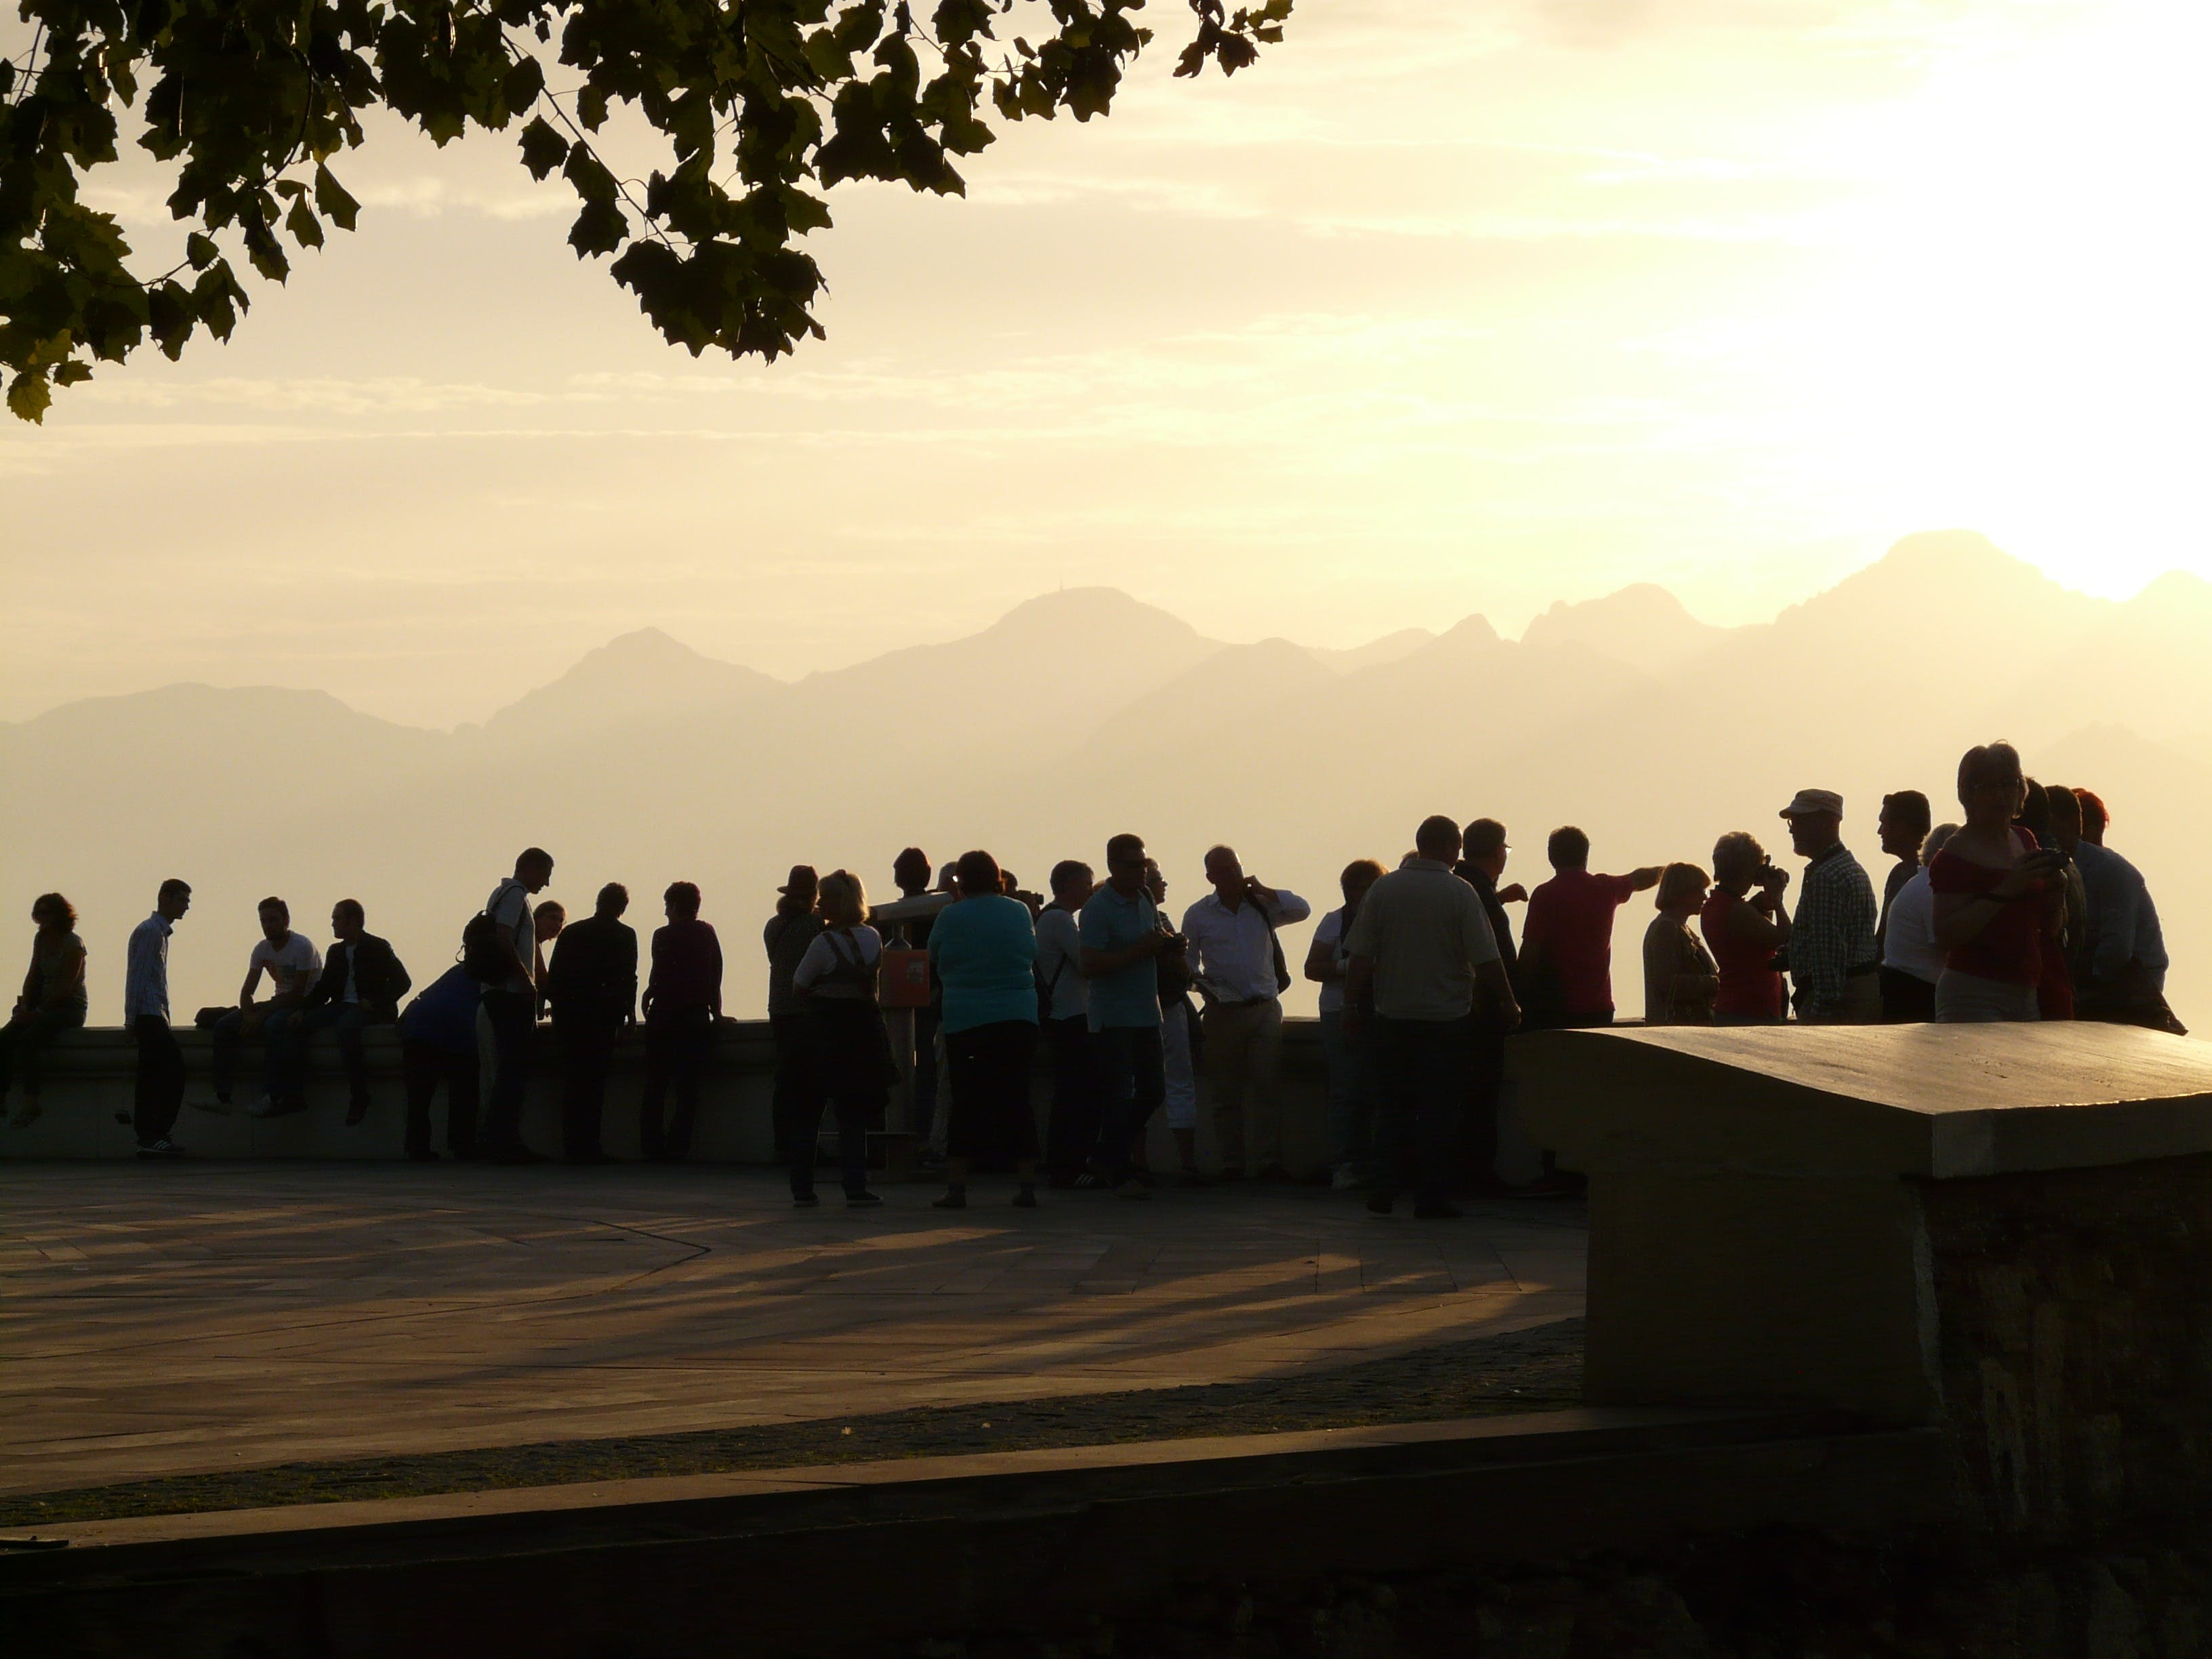 Free stock photo of tourists, meeting, group, silhouettes